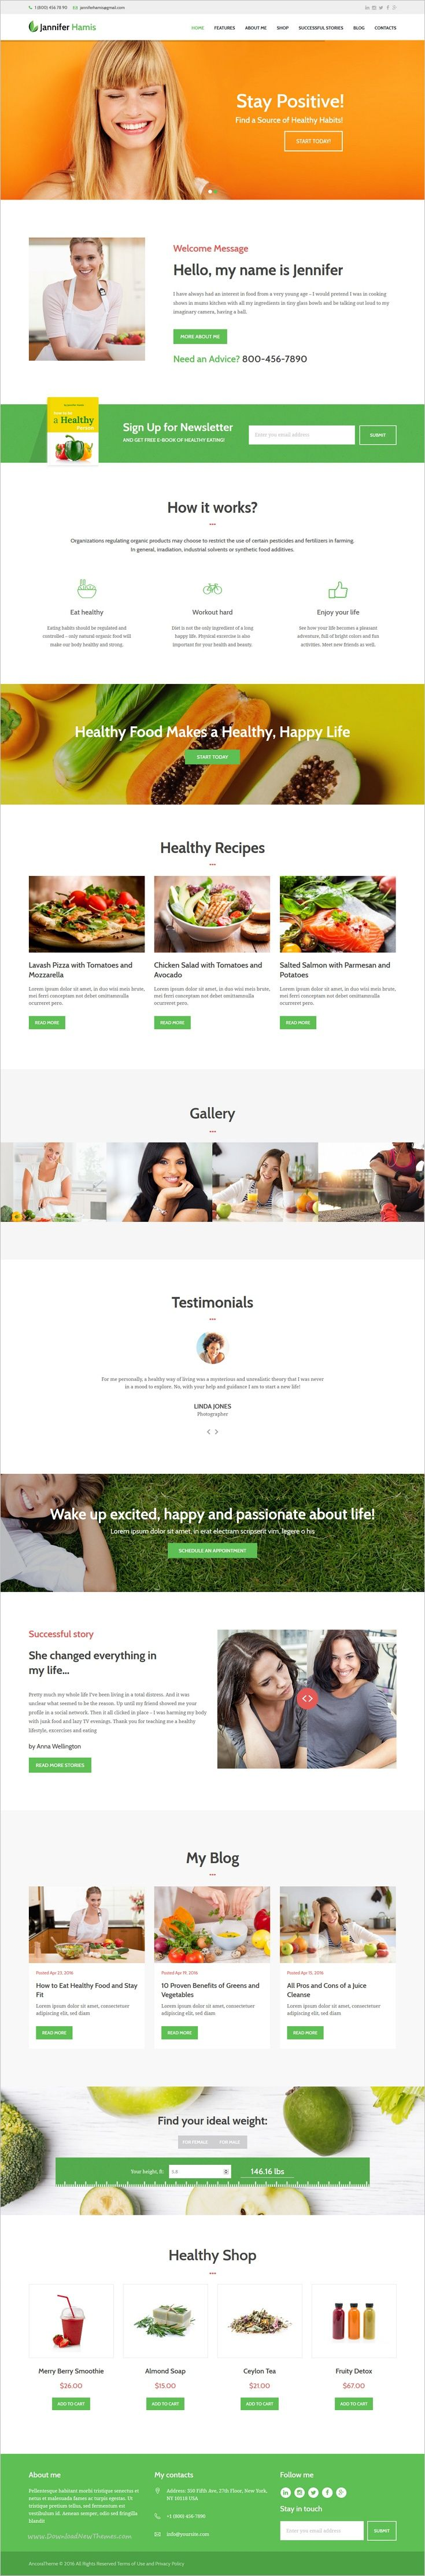 Health Coach is a wonderful responsive #WordPress theme for personal #health #coaches, #trainers, diet and nutrition consultants, healthy lifestyle blogs, recipe blogs and healthy shop websites download now➩ https://themeforest.net/item/wp-theme-for-personal-health-coach-healthy-lifestyle-blog/16867307?ref=Datasata